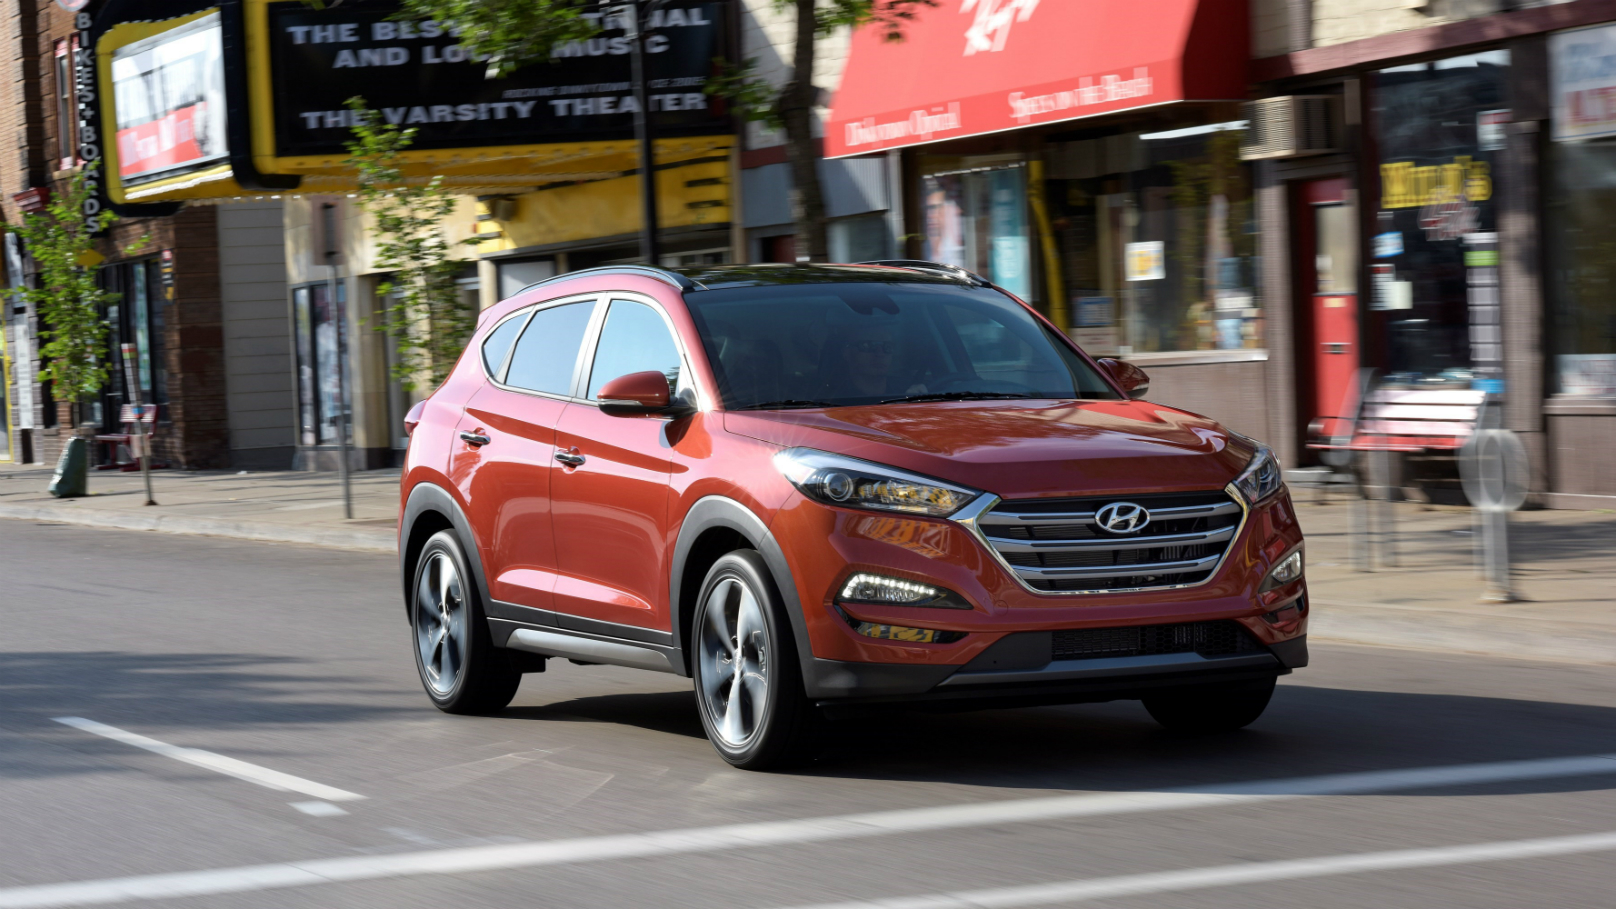 Least Reliable Cars 2017 Hyundai Tucson